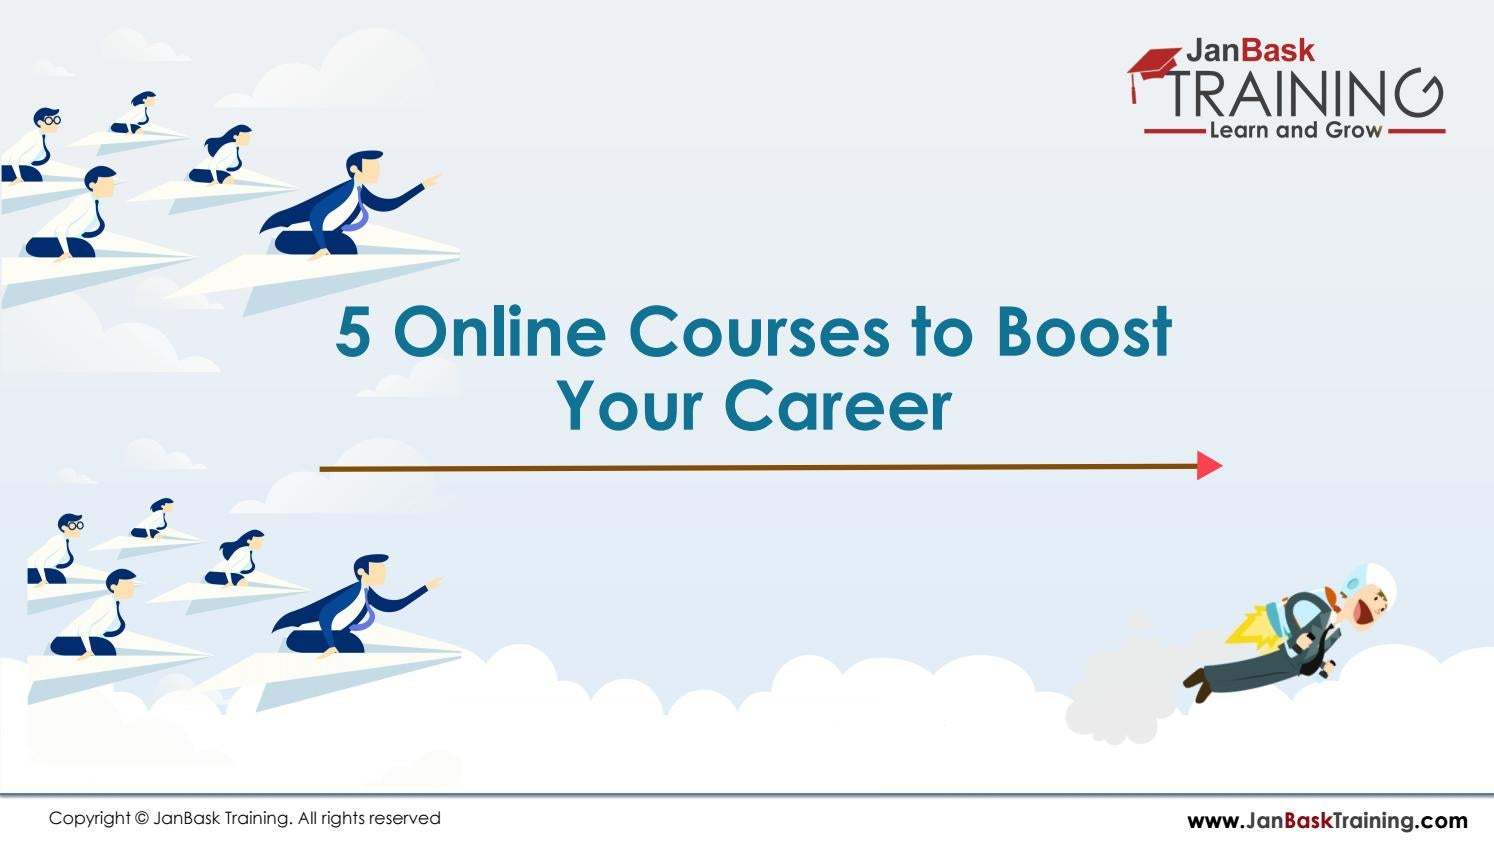 5 Online Courses to Boost Your Career by JanBaskTraining - issuu